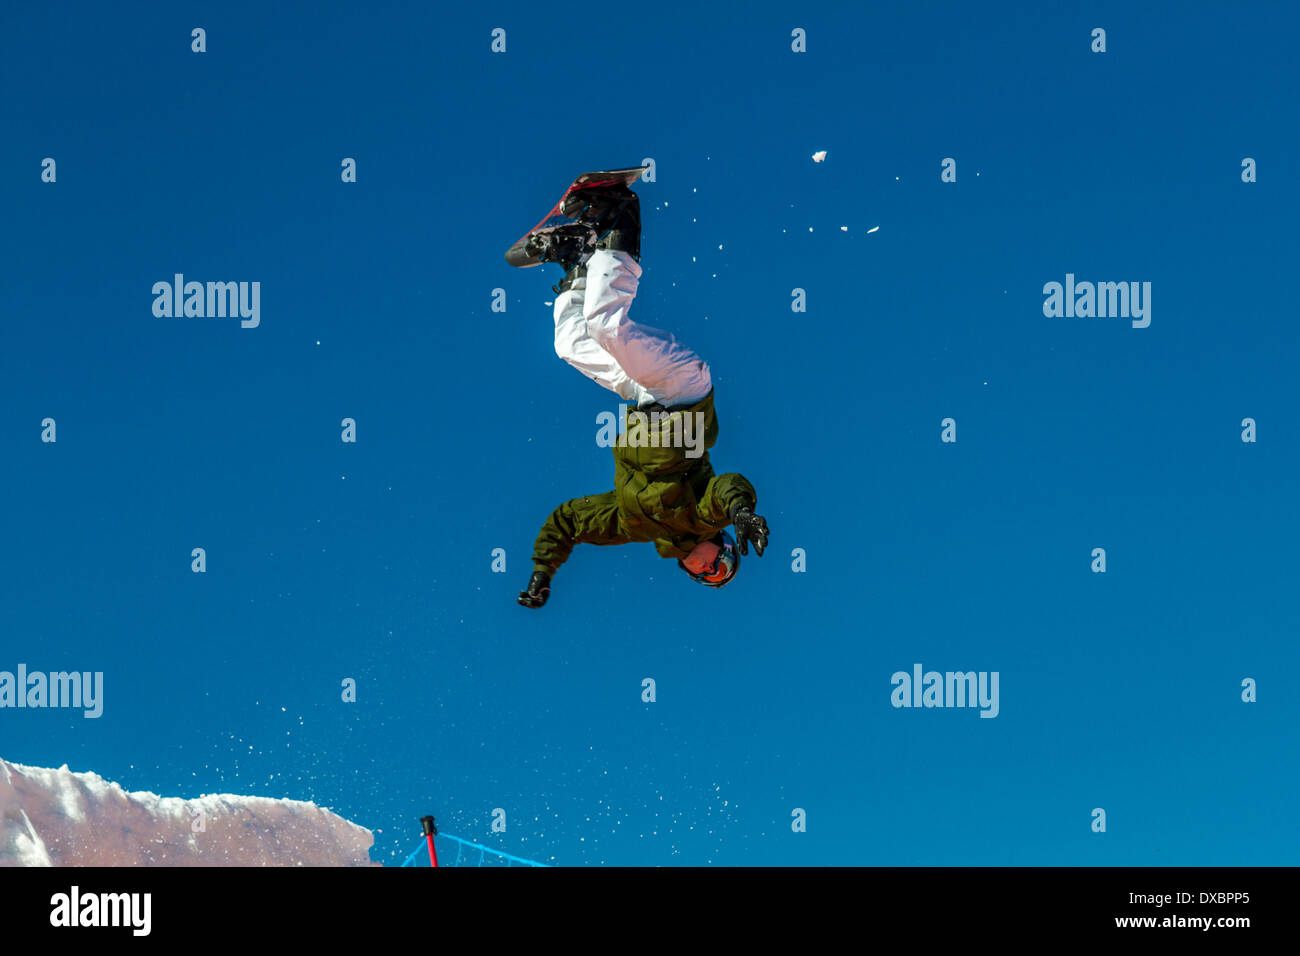 Airborne snowboarder about to land in a heap on a giant airbag Stock Photo